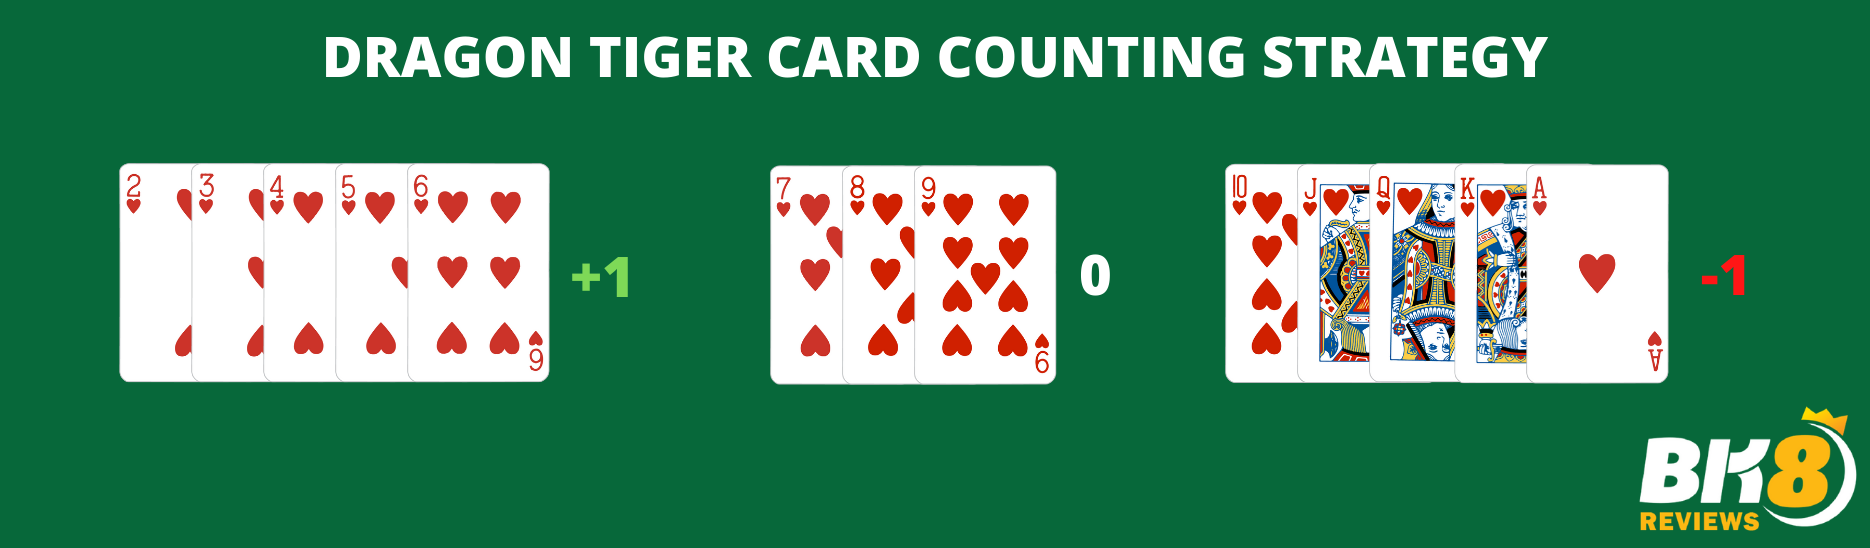 DRAGON TIGER CARD COUNTING STRATEGY